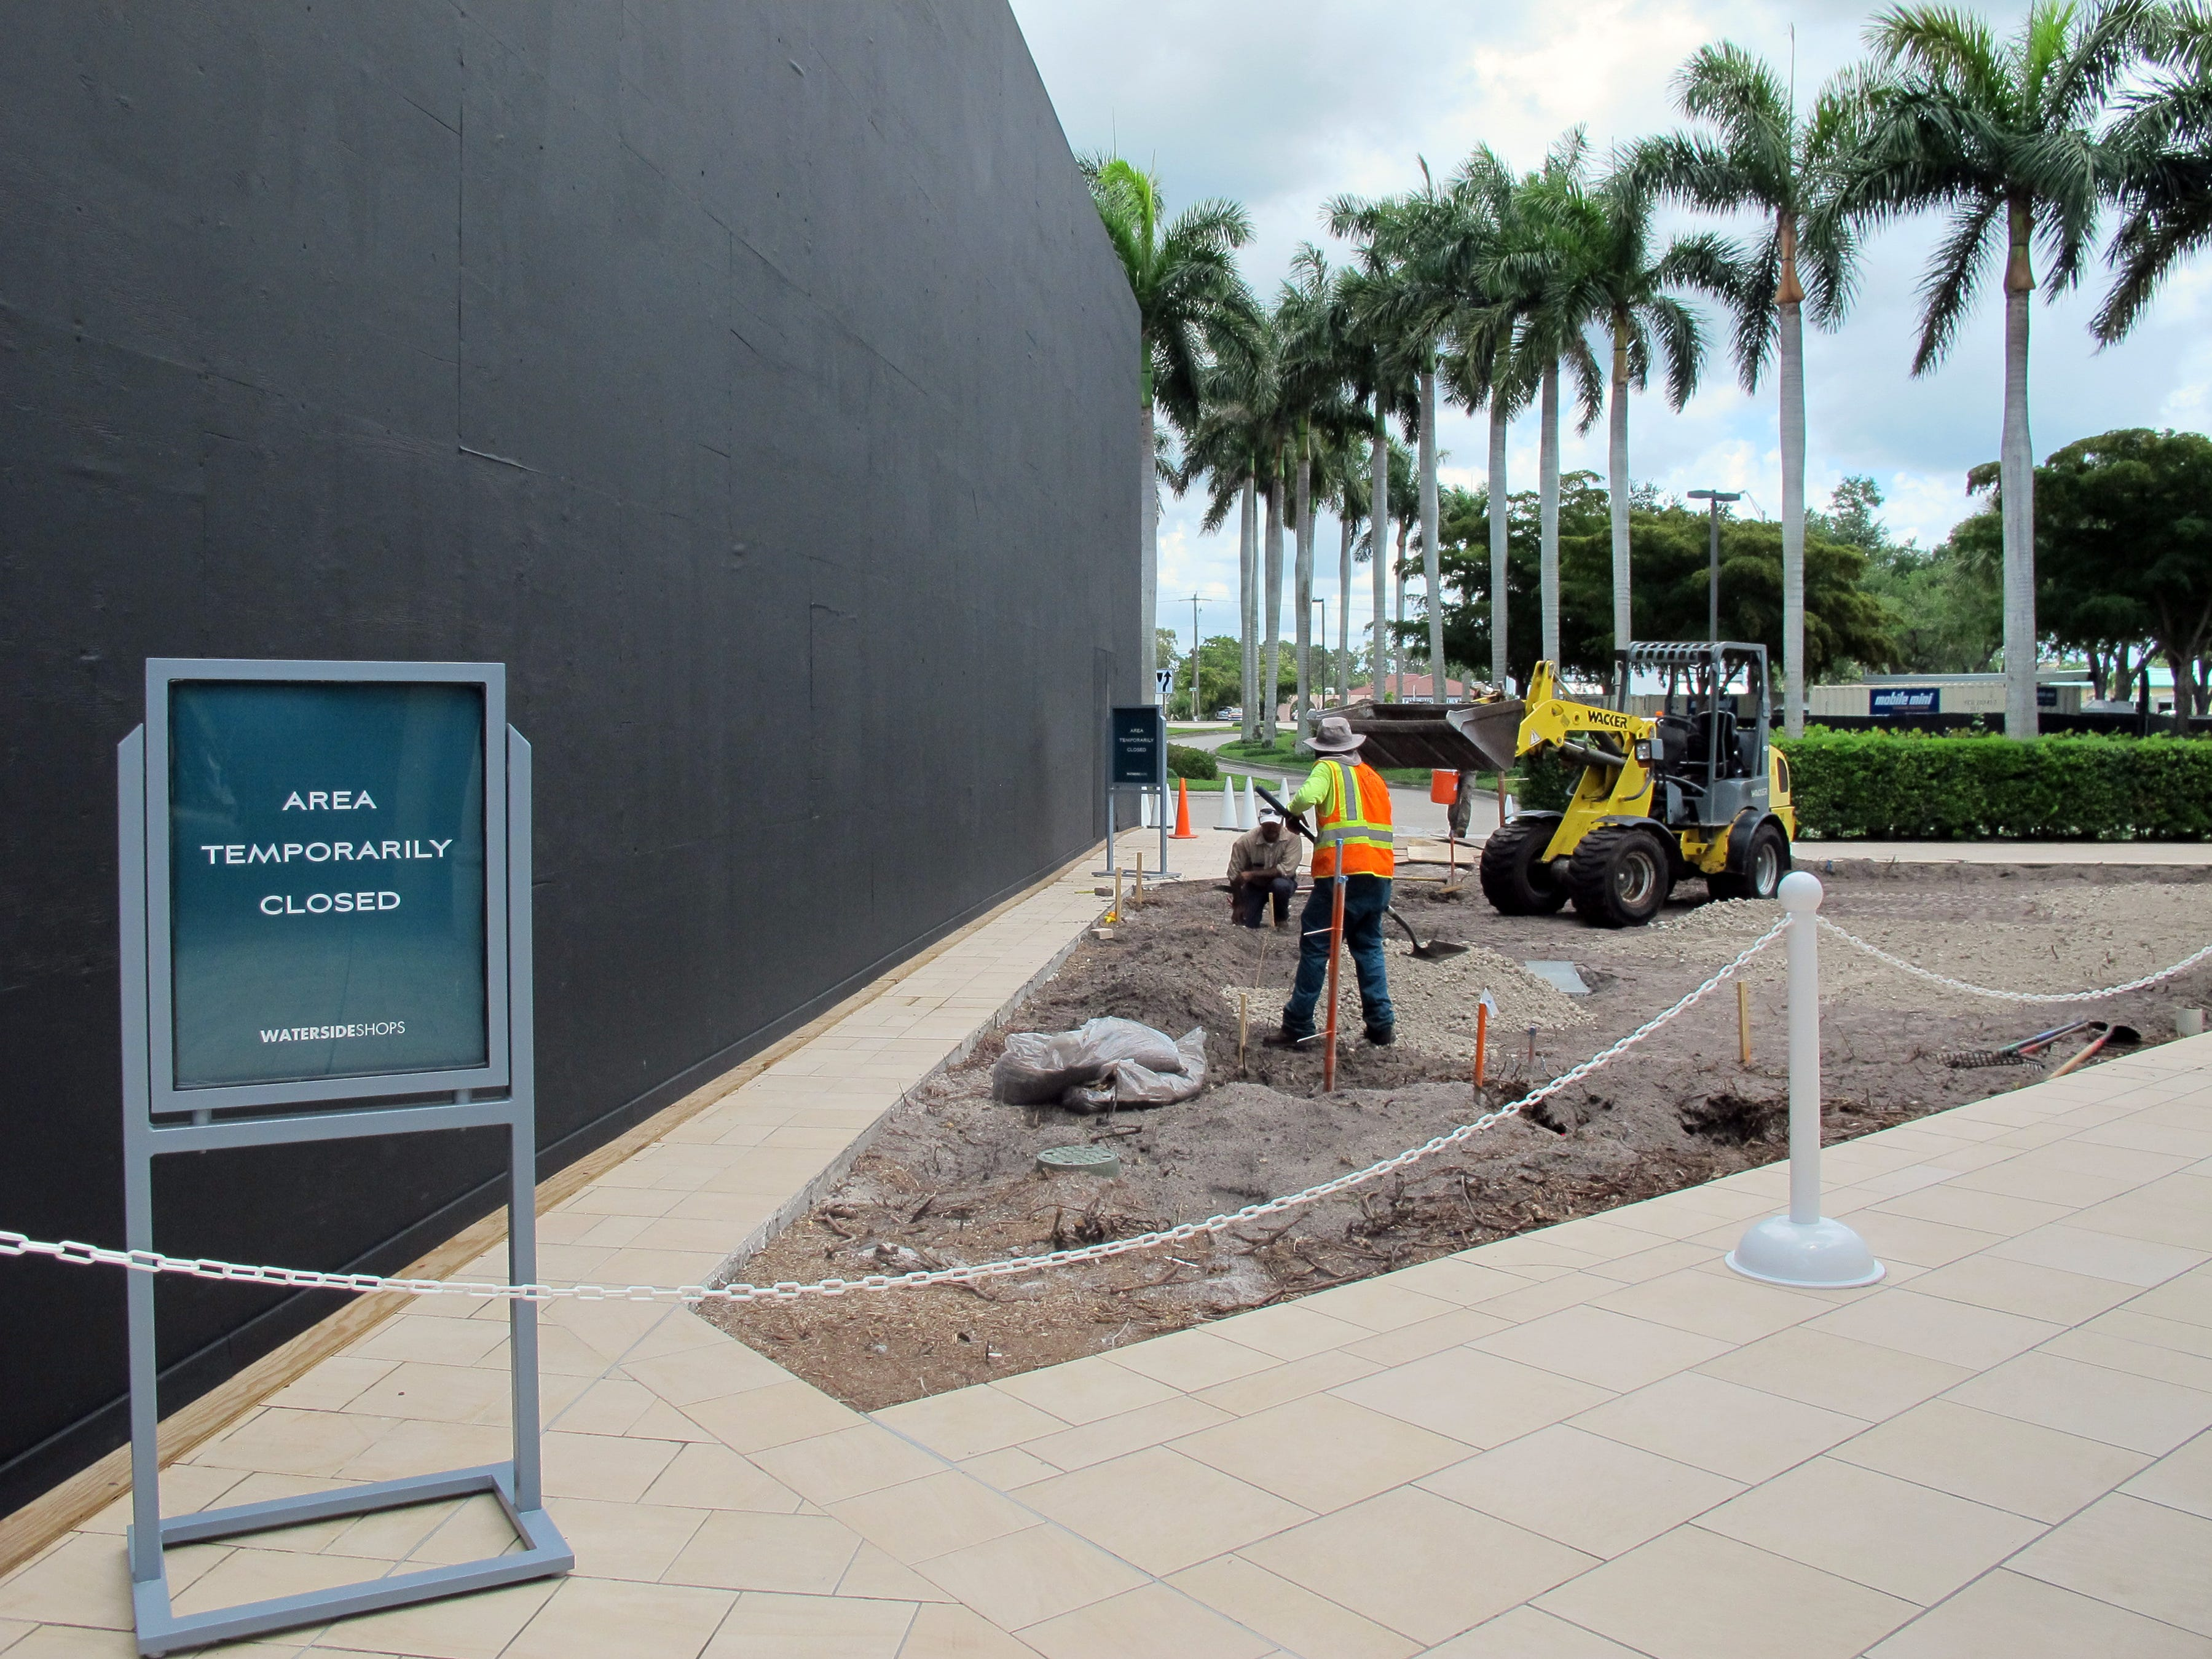 The Apple store at Waterside Shops in Naples looks similar to an iPhone box, left, while under construction on the eastern edge of the mall in preparation for its reopening this fall.